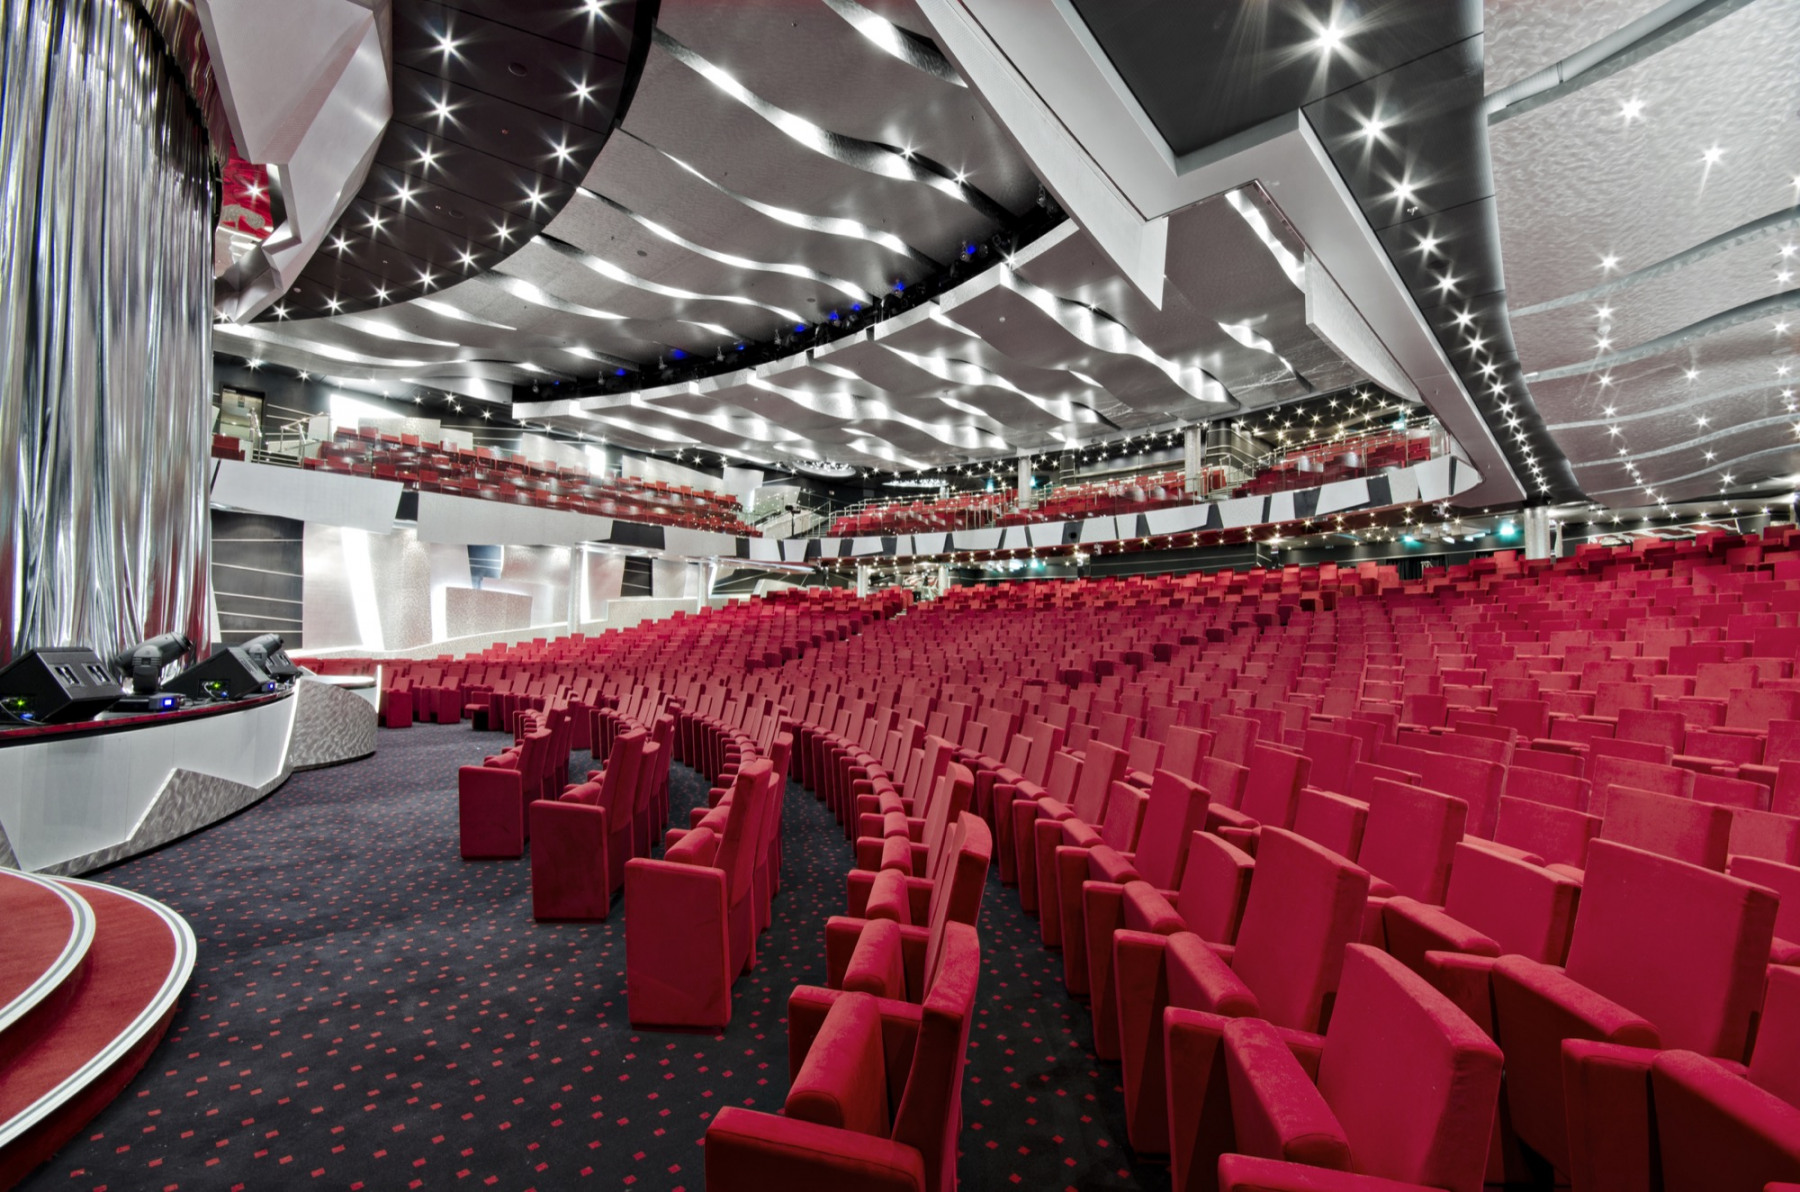 MSC Fantasia Class pantheon theatre 2.jpg